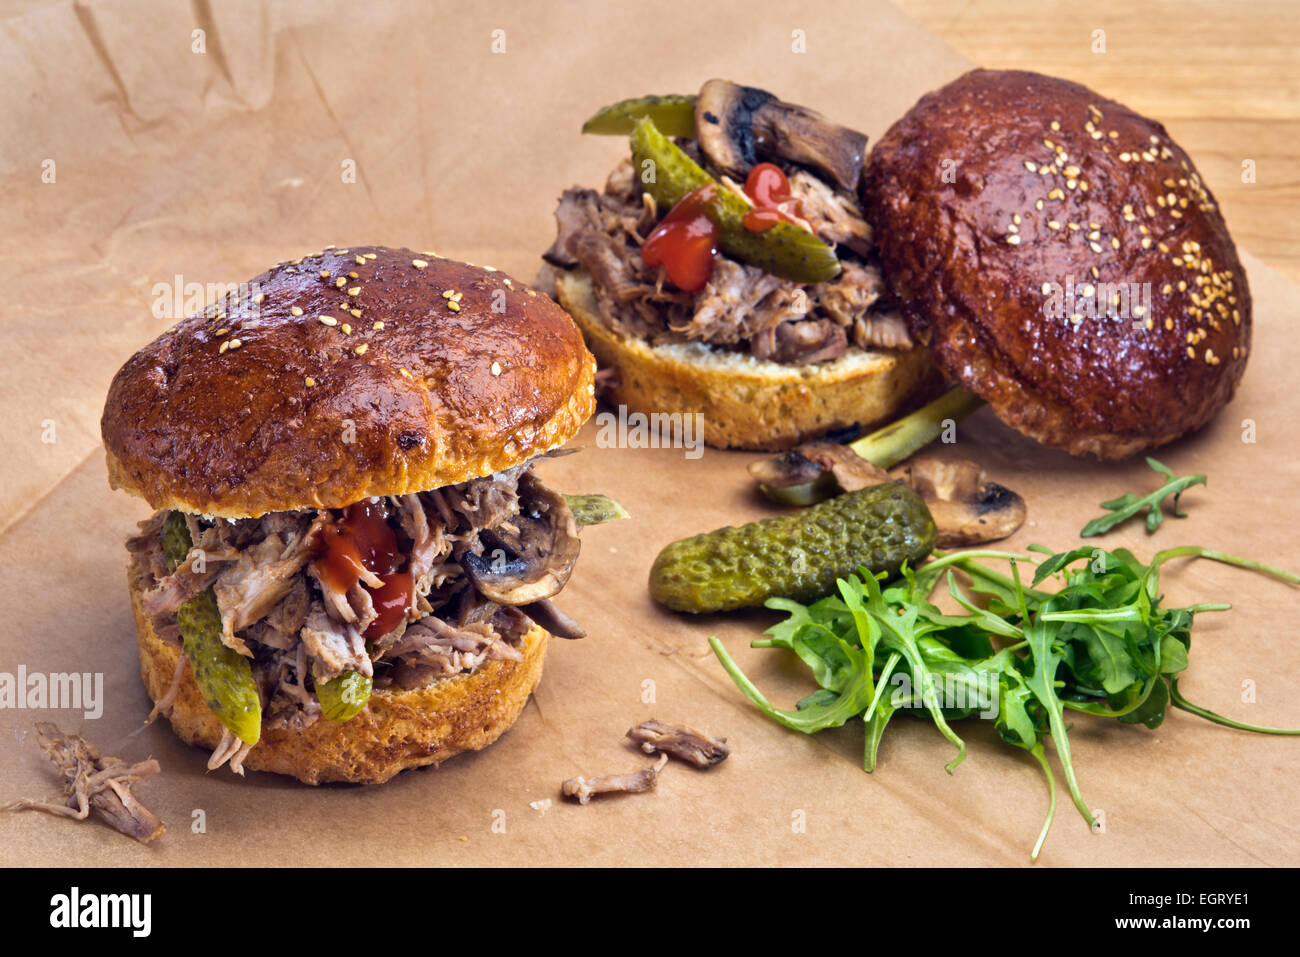 Two sandwiches with pulled pork, pickles and grilled mushrooms  in home made brioche buns. - Stock Image